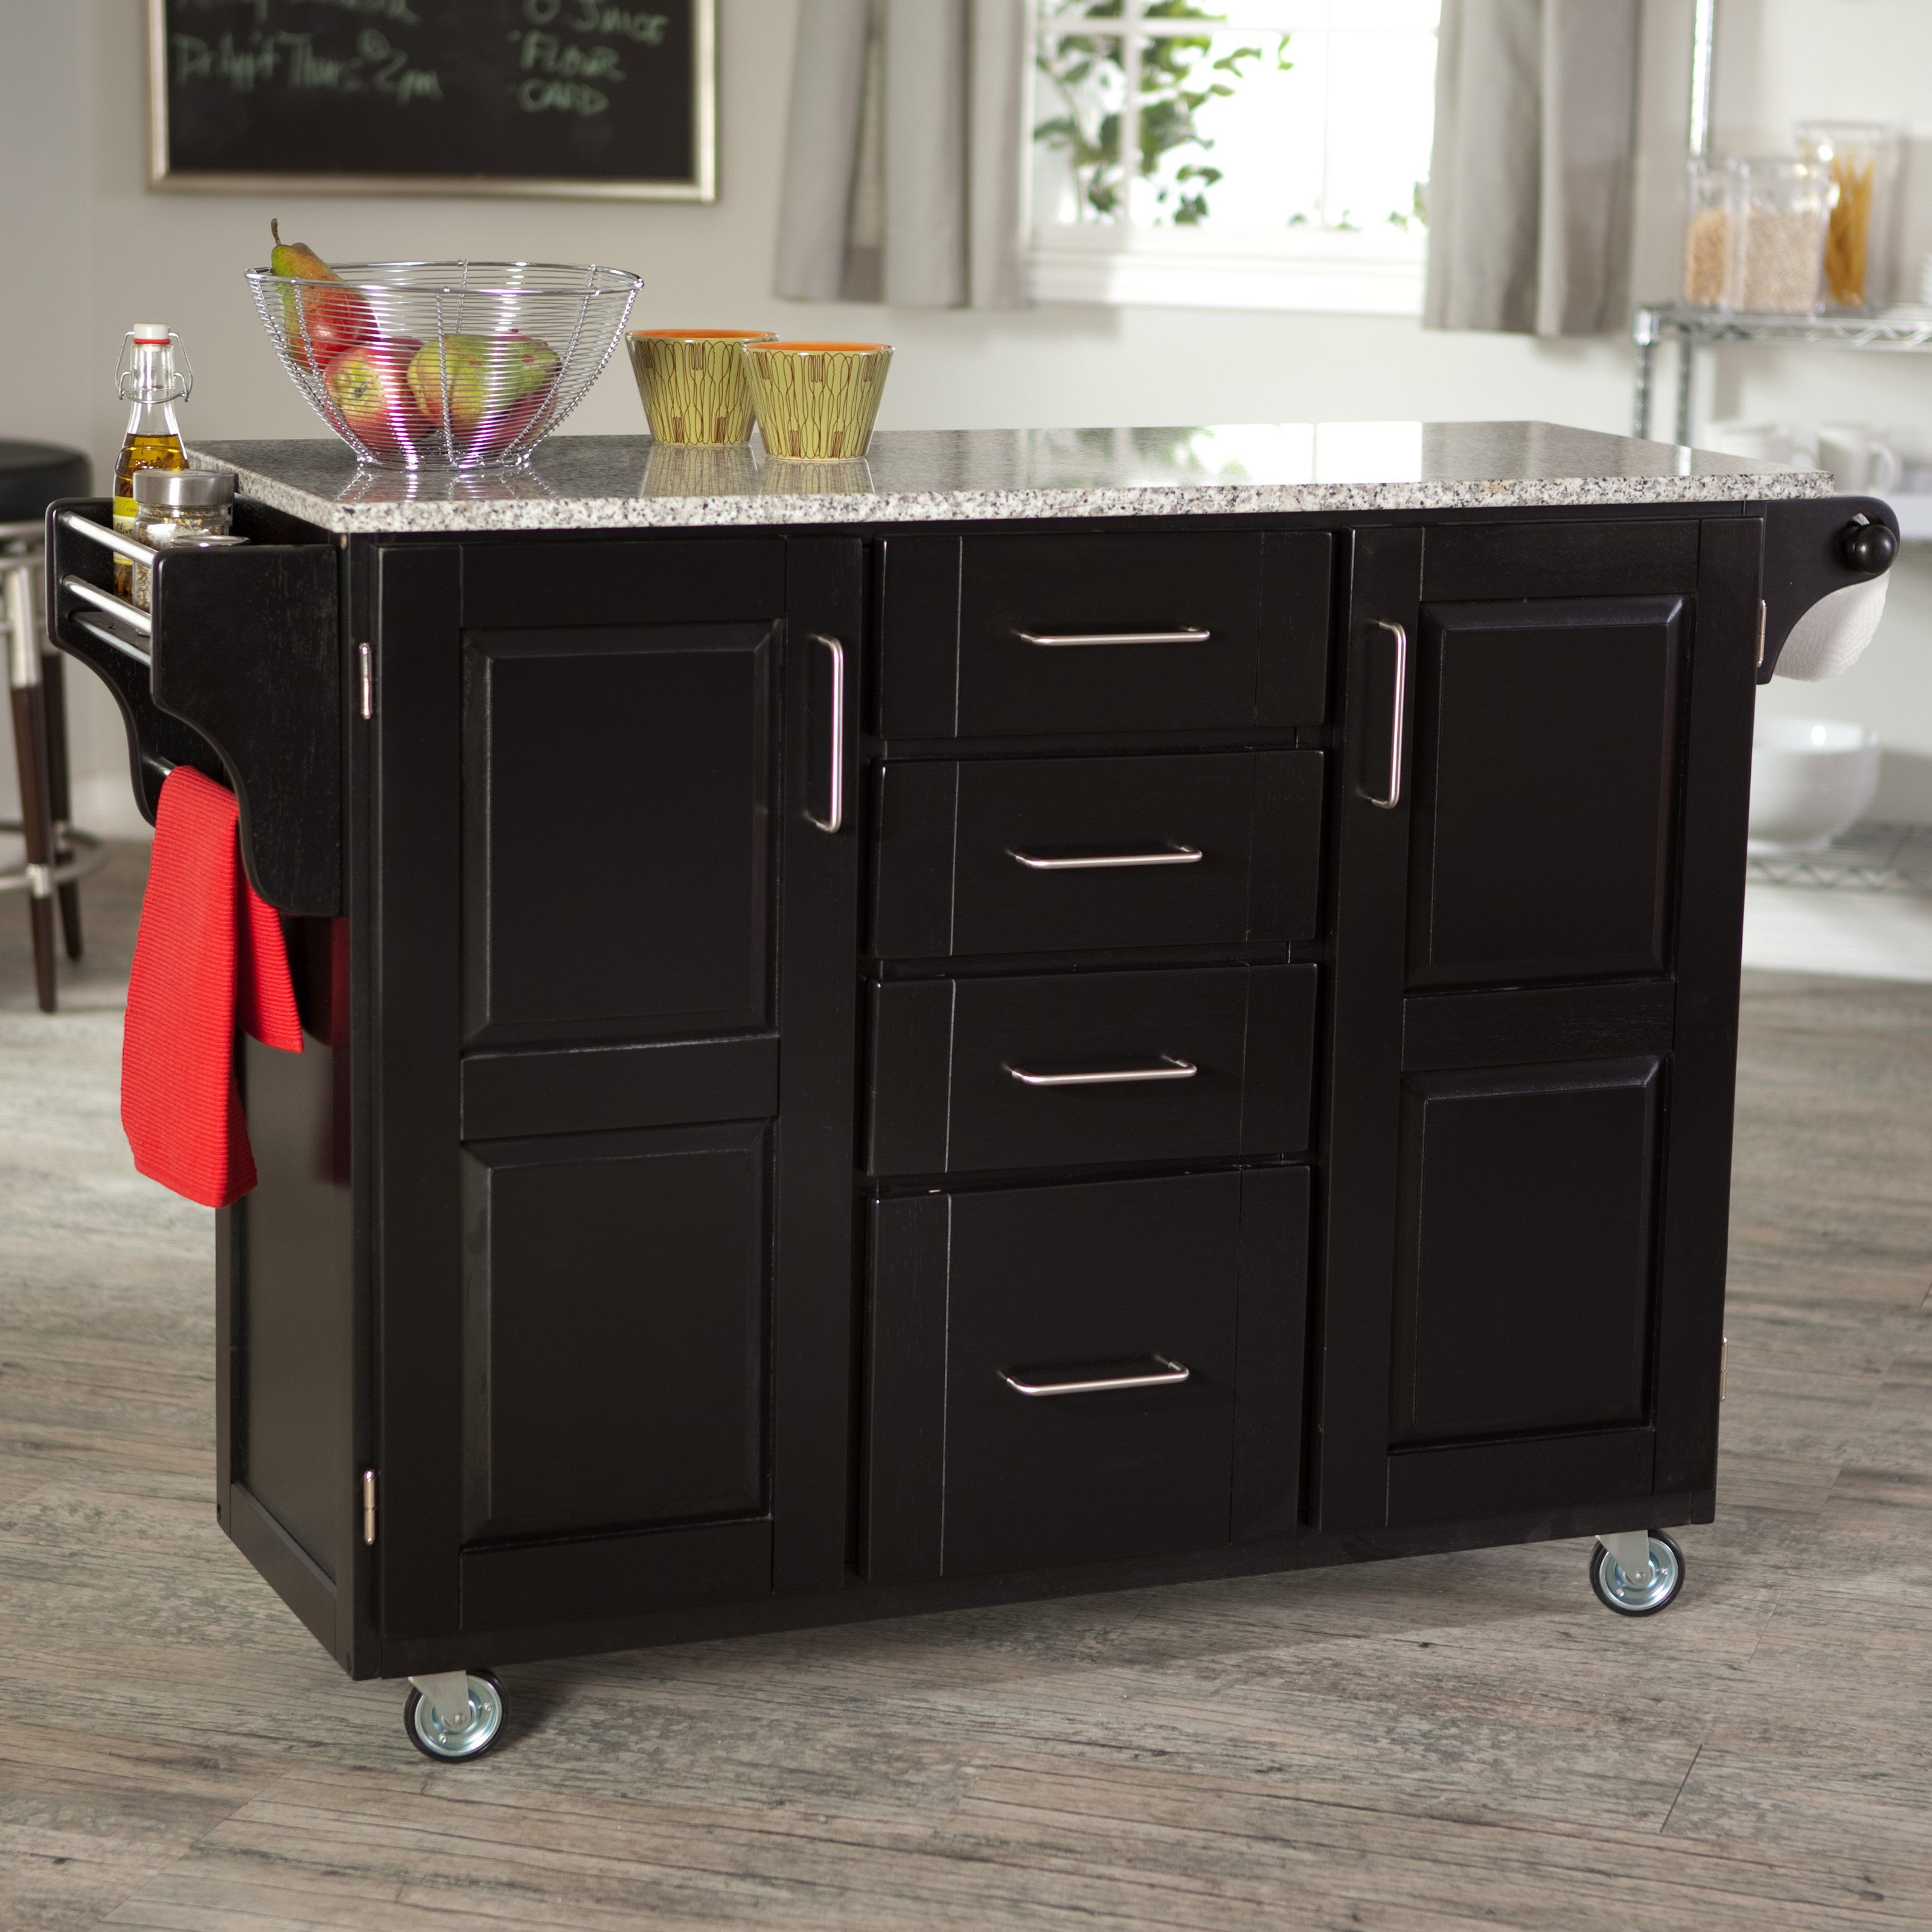 Have To Have It. Design Your Own Kitchen Island $489.99